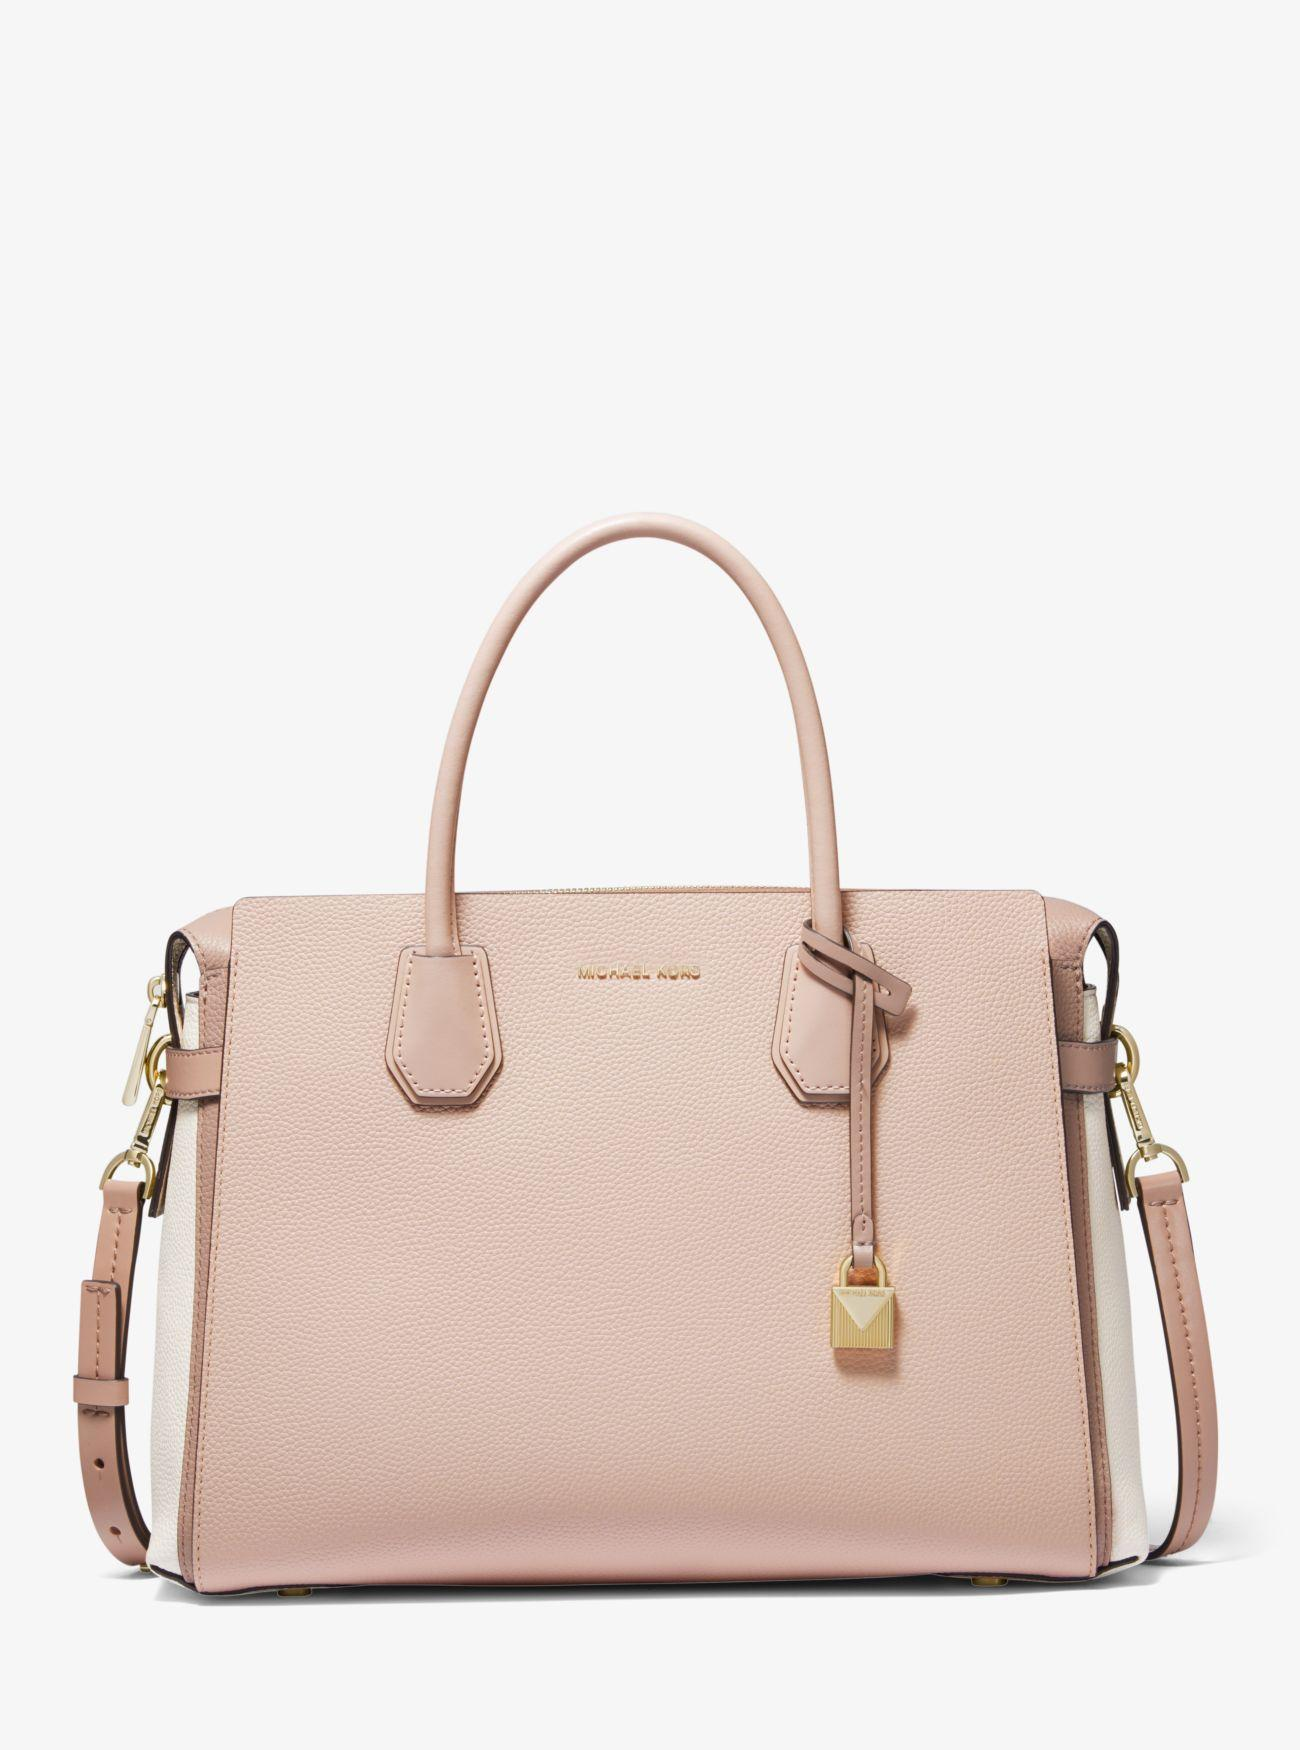 60b08b77fe8f MICHAEL Michael Kors. Women s Pink Mercer Large Tri-color Pebbled Leather  Belted Satchel